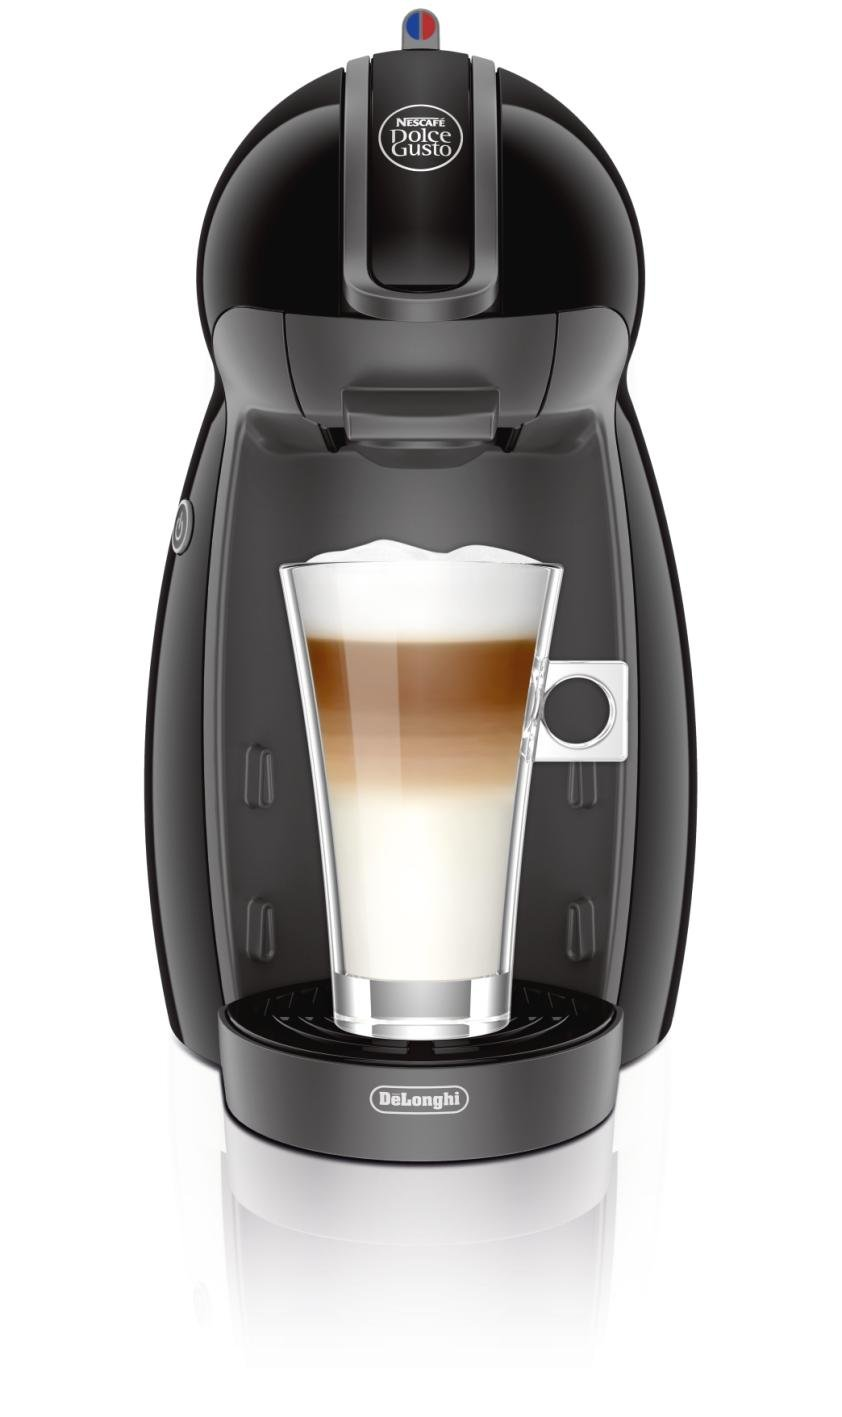 Nescafe Dolce Gusto Piccolo: Amazon.com: Grocery & Gourmet Food